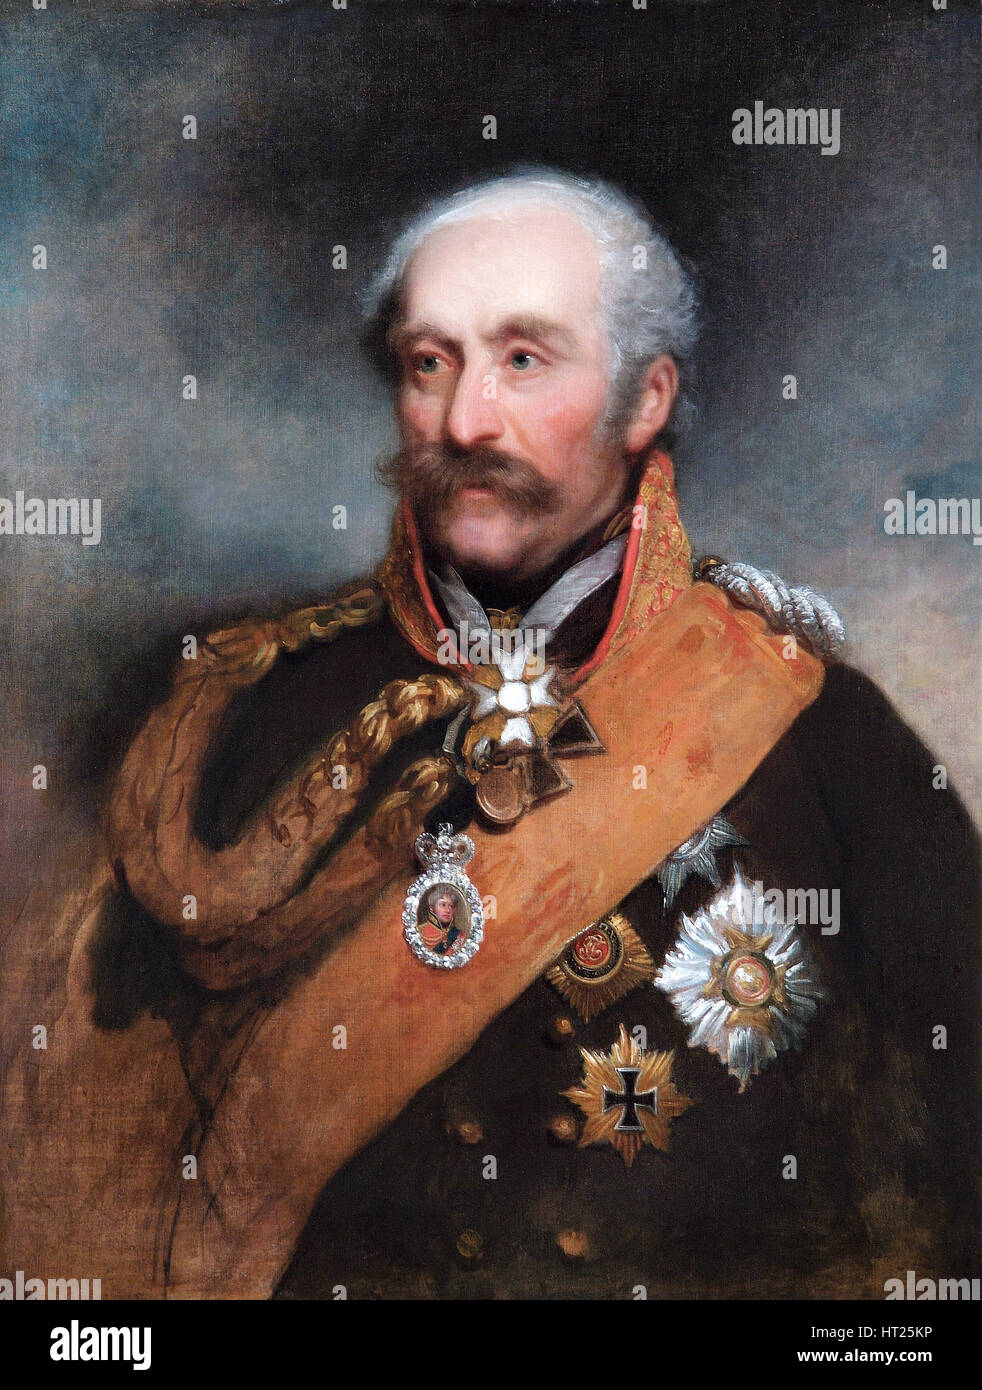 Portrait of Field Marshal Blücher, Prussian soldier, c1818. Artist: George Dawe. - Stock Image